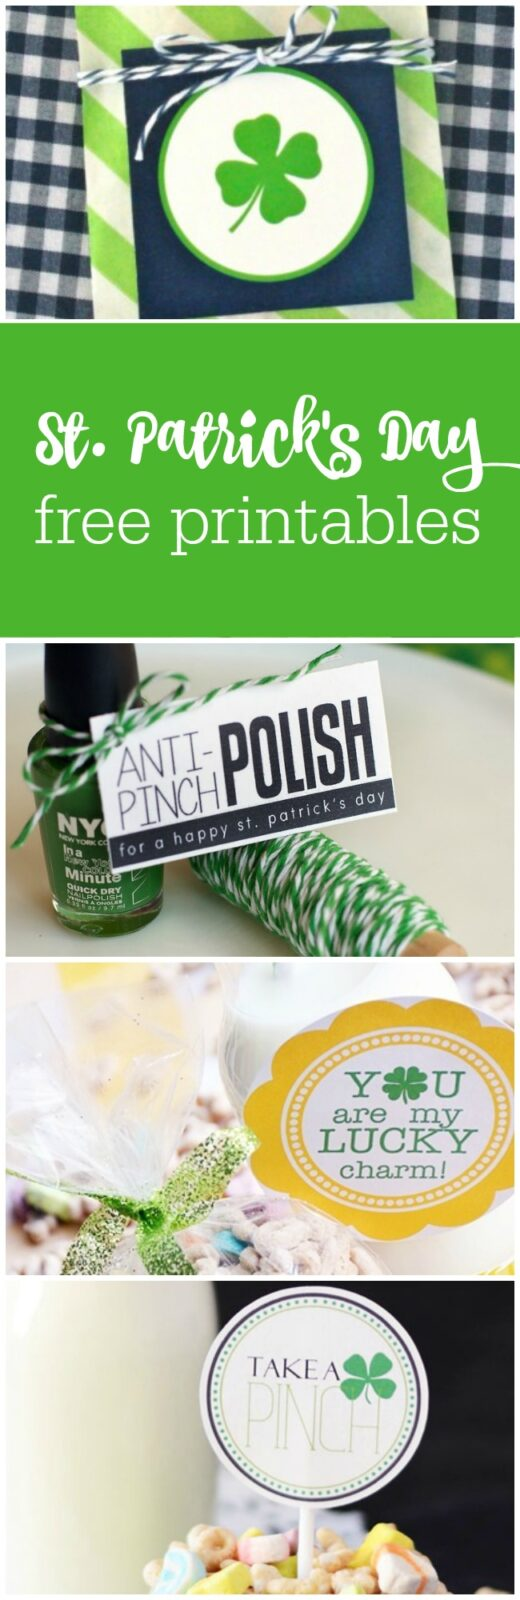 24 St. Patrick's Day free printables curated by The Party Teacher